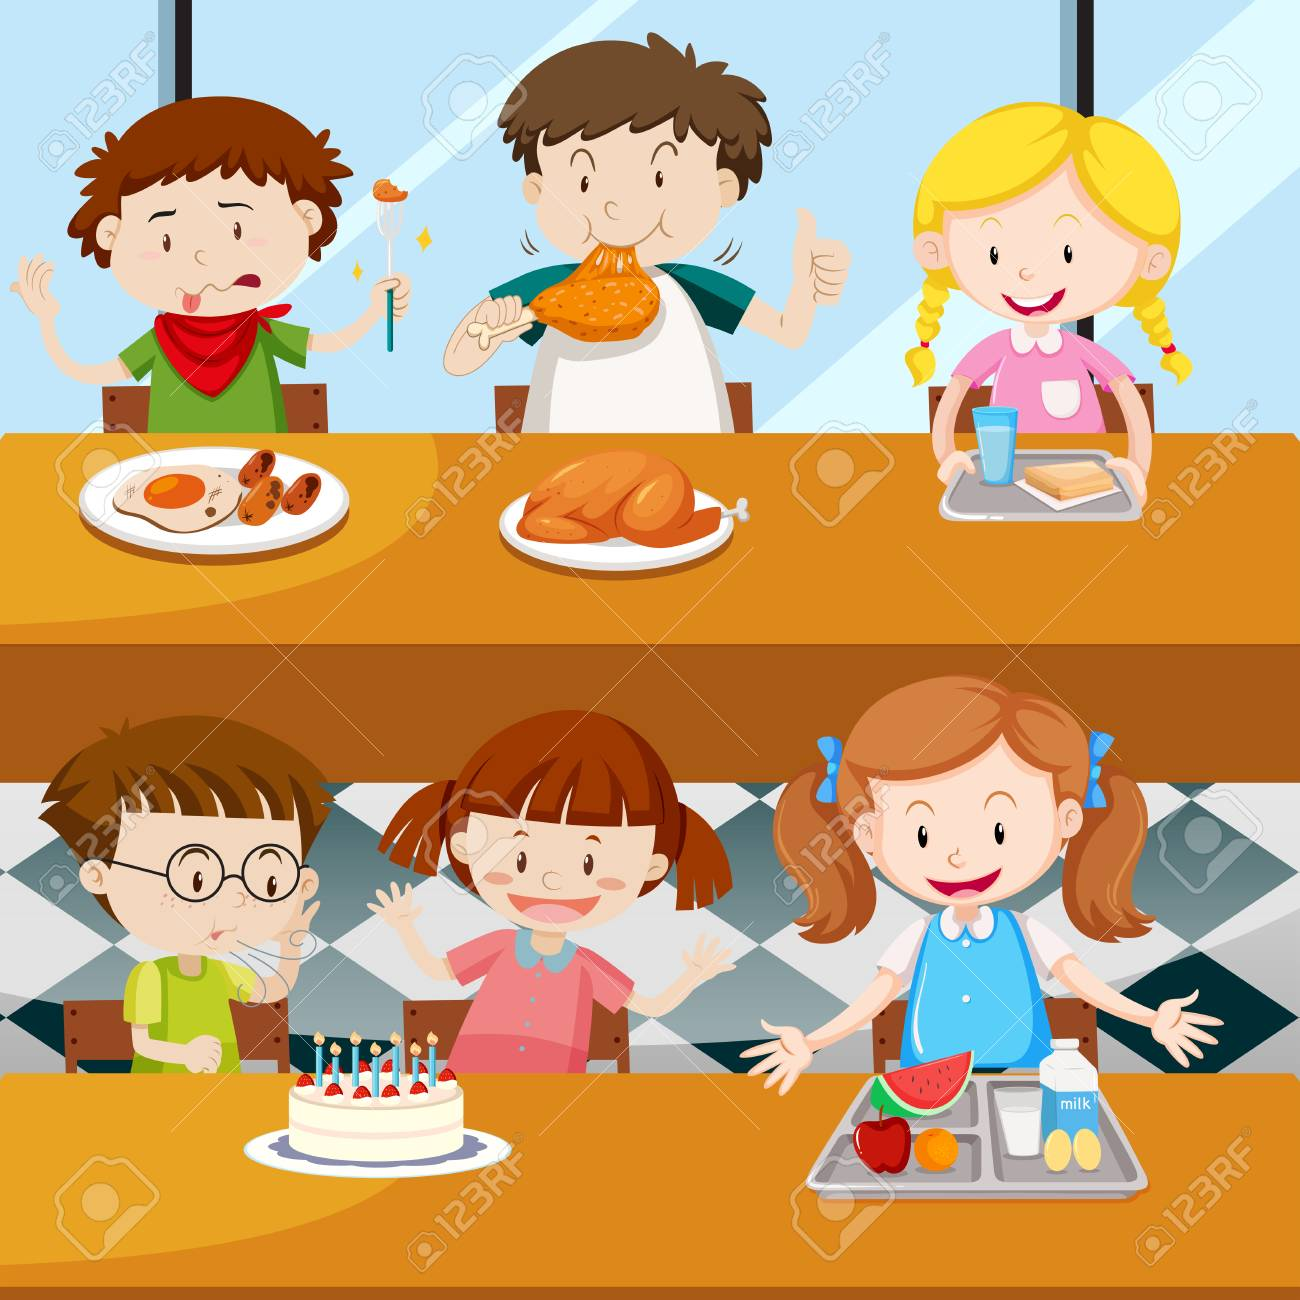 Many kids eating in the canteen illustration..